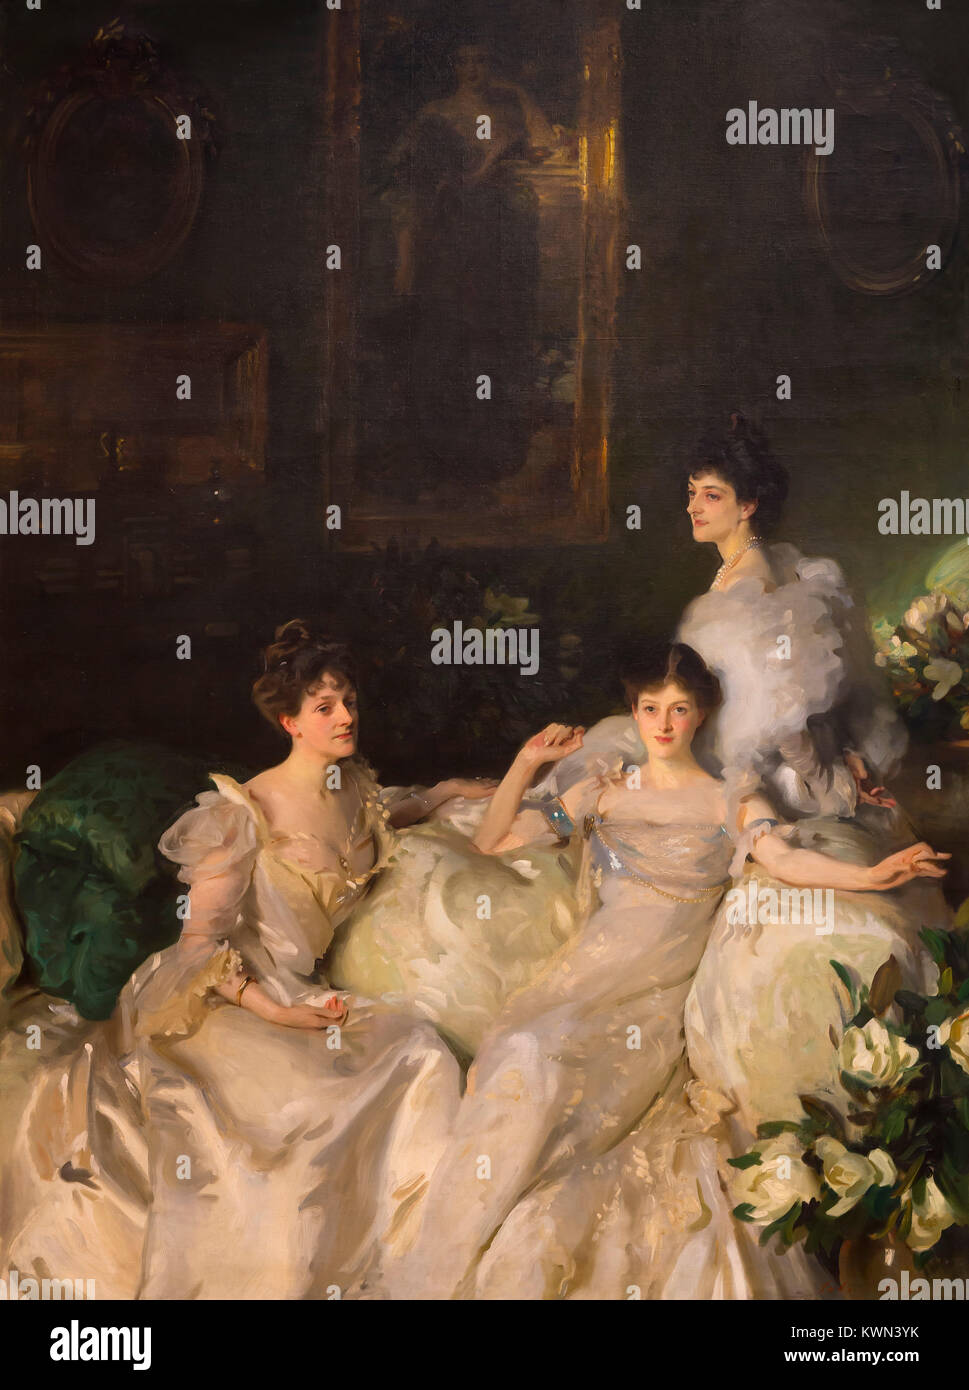 The Wyndham Sisters, Lady Elcho, Mrs Adeane and Mrs Tennant, John Singer Sargent, 1899, Metropolitan Museum of Art, - Stock Image